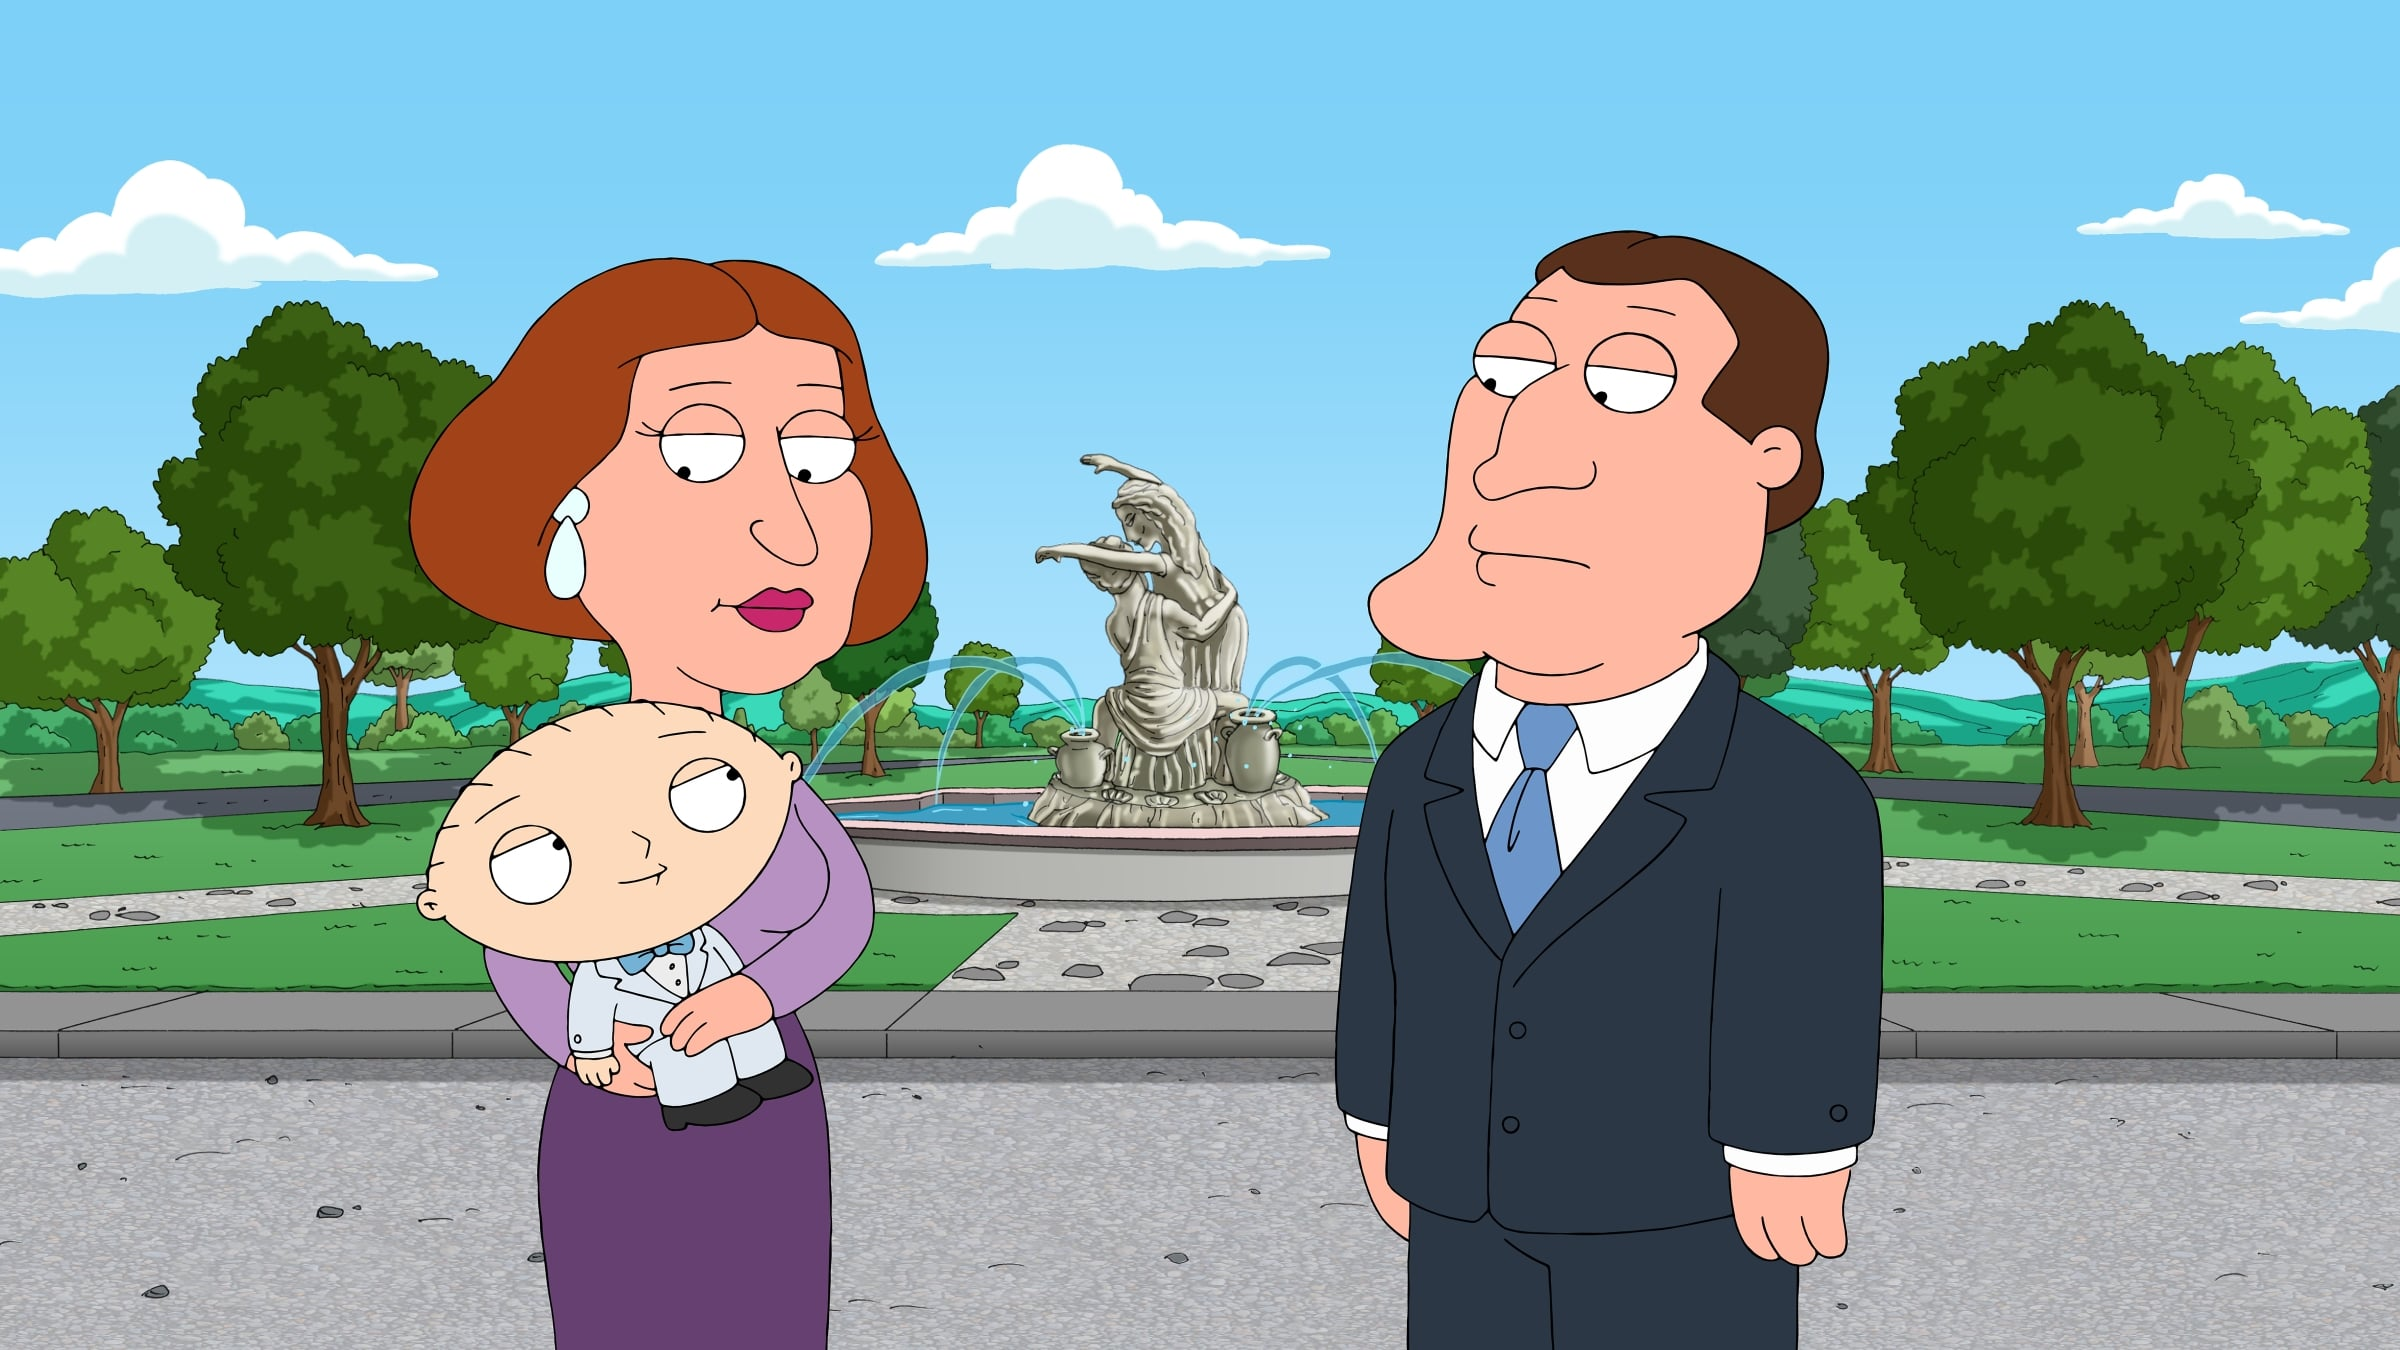 family guy response to episode Former vice presidential candidate sarah palin's family on tuesday said the creators of american animated show family guy were heartless jerks after the show appeared to mock palin's down syndrome son in an episode.